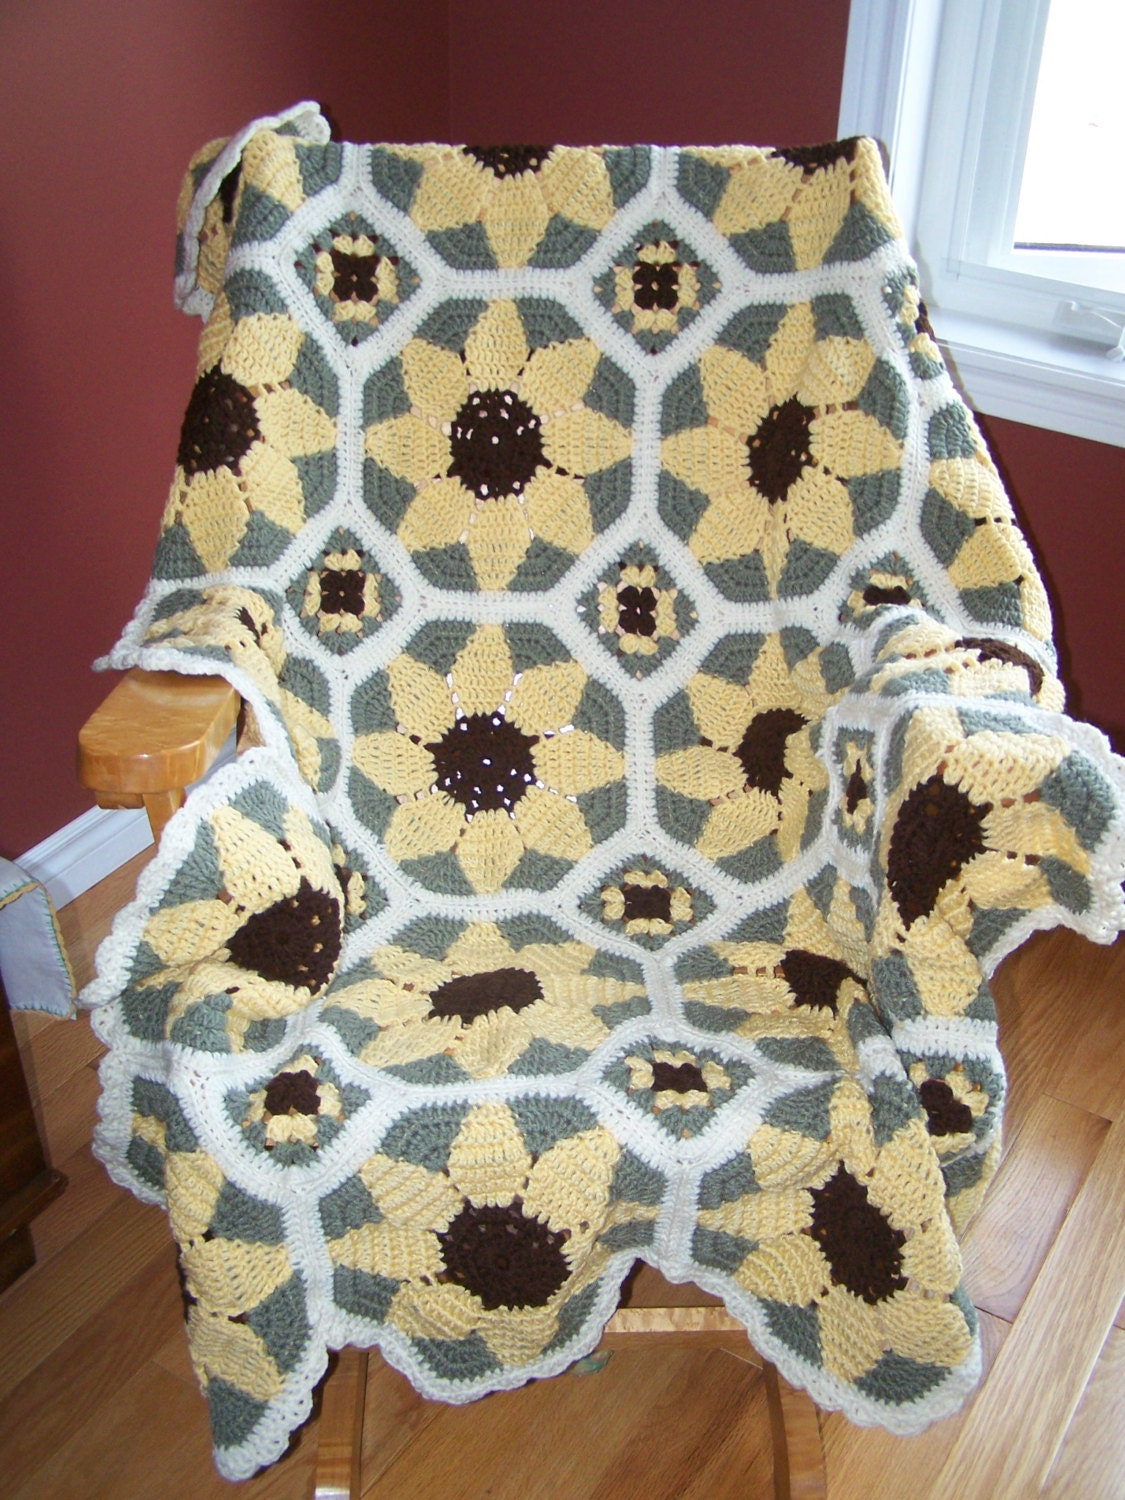 New Crocheted Sunflower Afghan by hookinontheside on Etsy